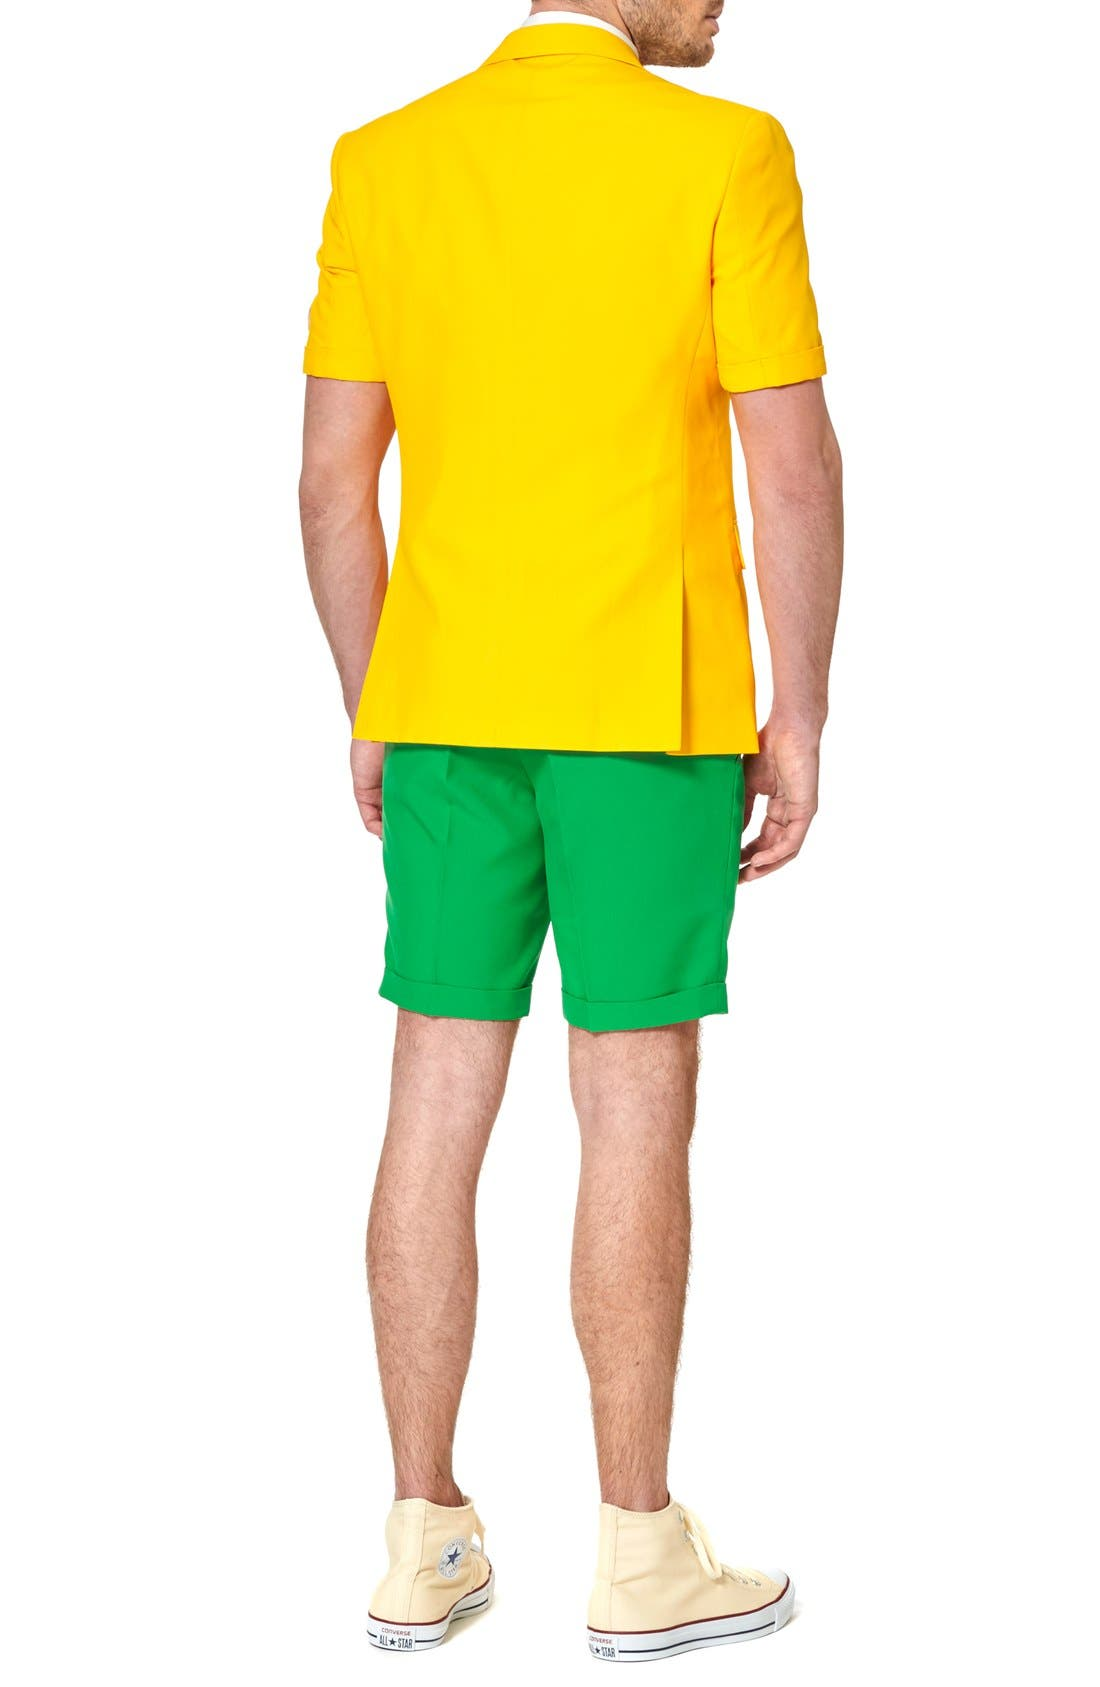 Alternate Image 2  - OppoSuits 'Summer Green & Gold' Trim Fit Short Suit with Tie